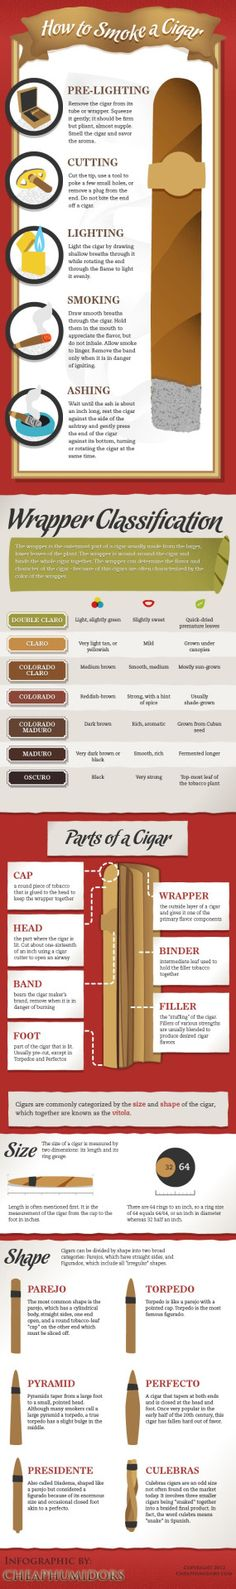 Las Vegas Cigar Guys — For you #newbies out there. See you at En Fuego...